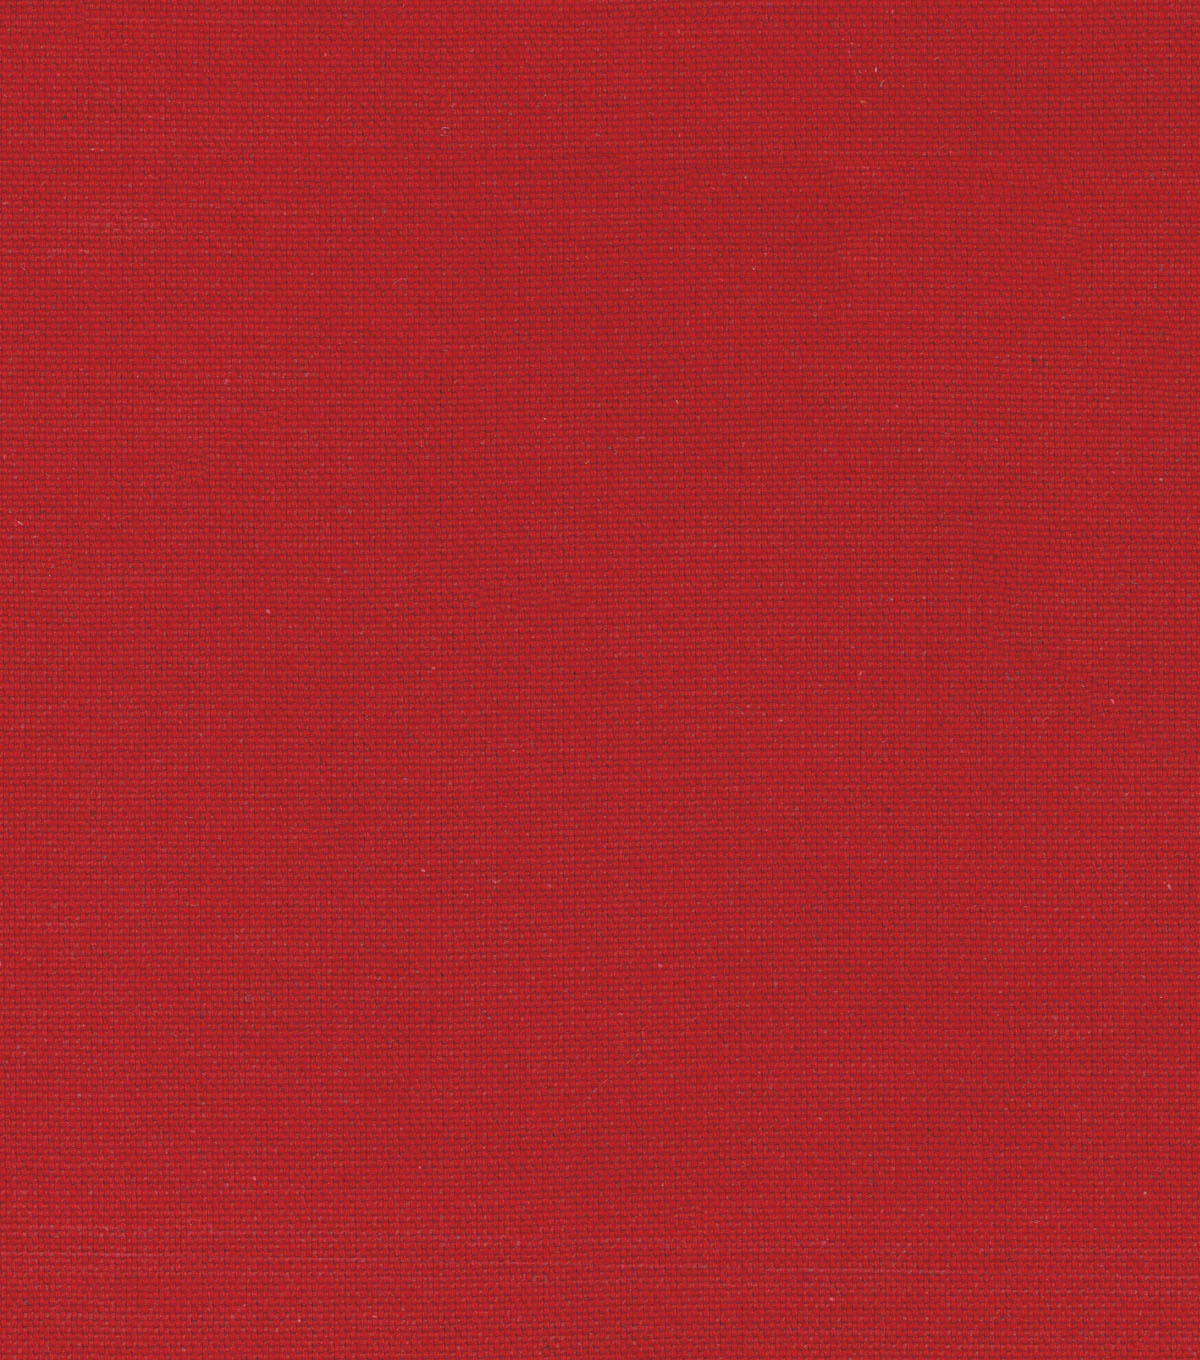 P/K Lifestyles Solid Fabric 54\u0022-Union Solid/Cardinal